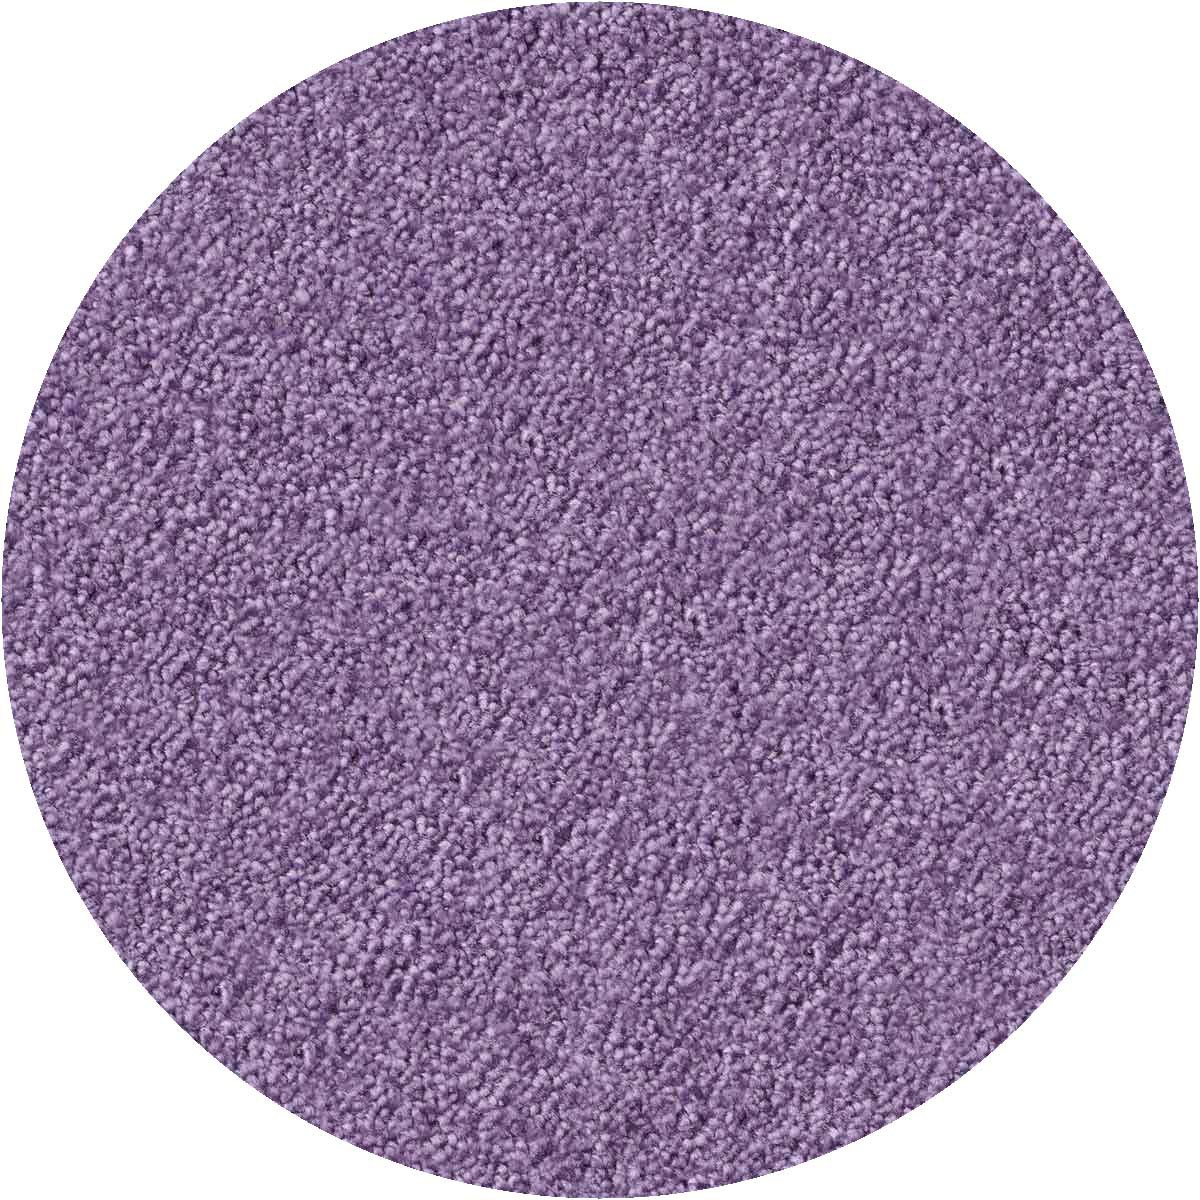 silky seal teppich lavendel rund 2 00 m object carpet. Black Bedroom Furniture Sets. Home Design Ideas